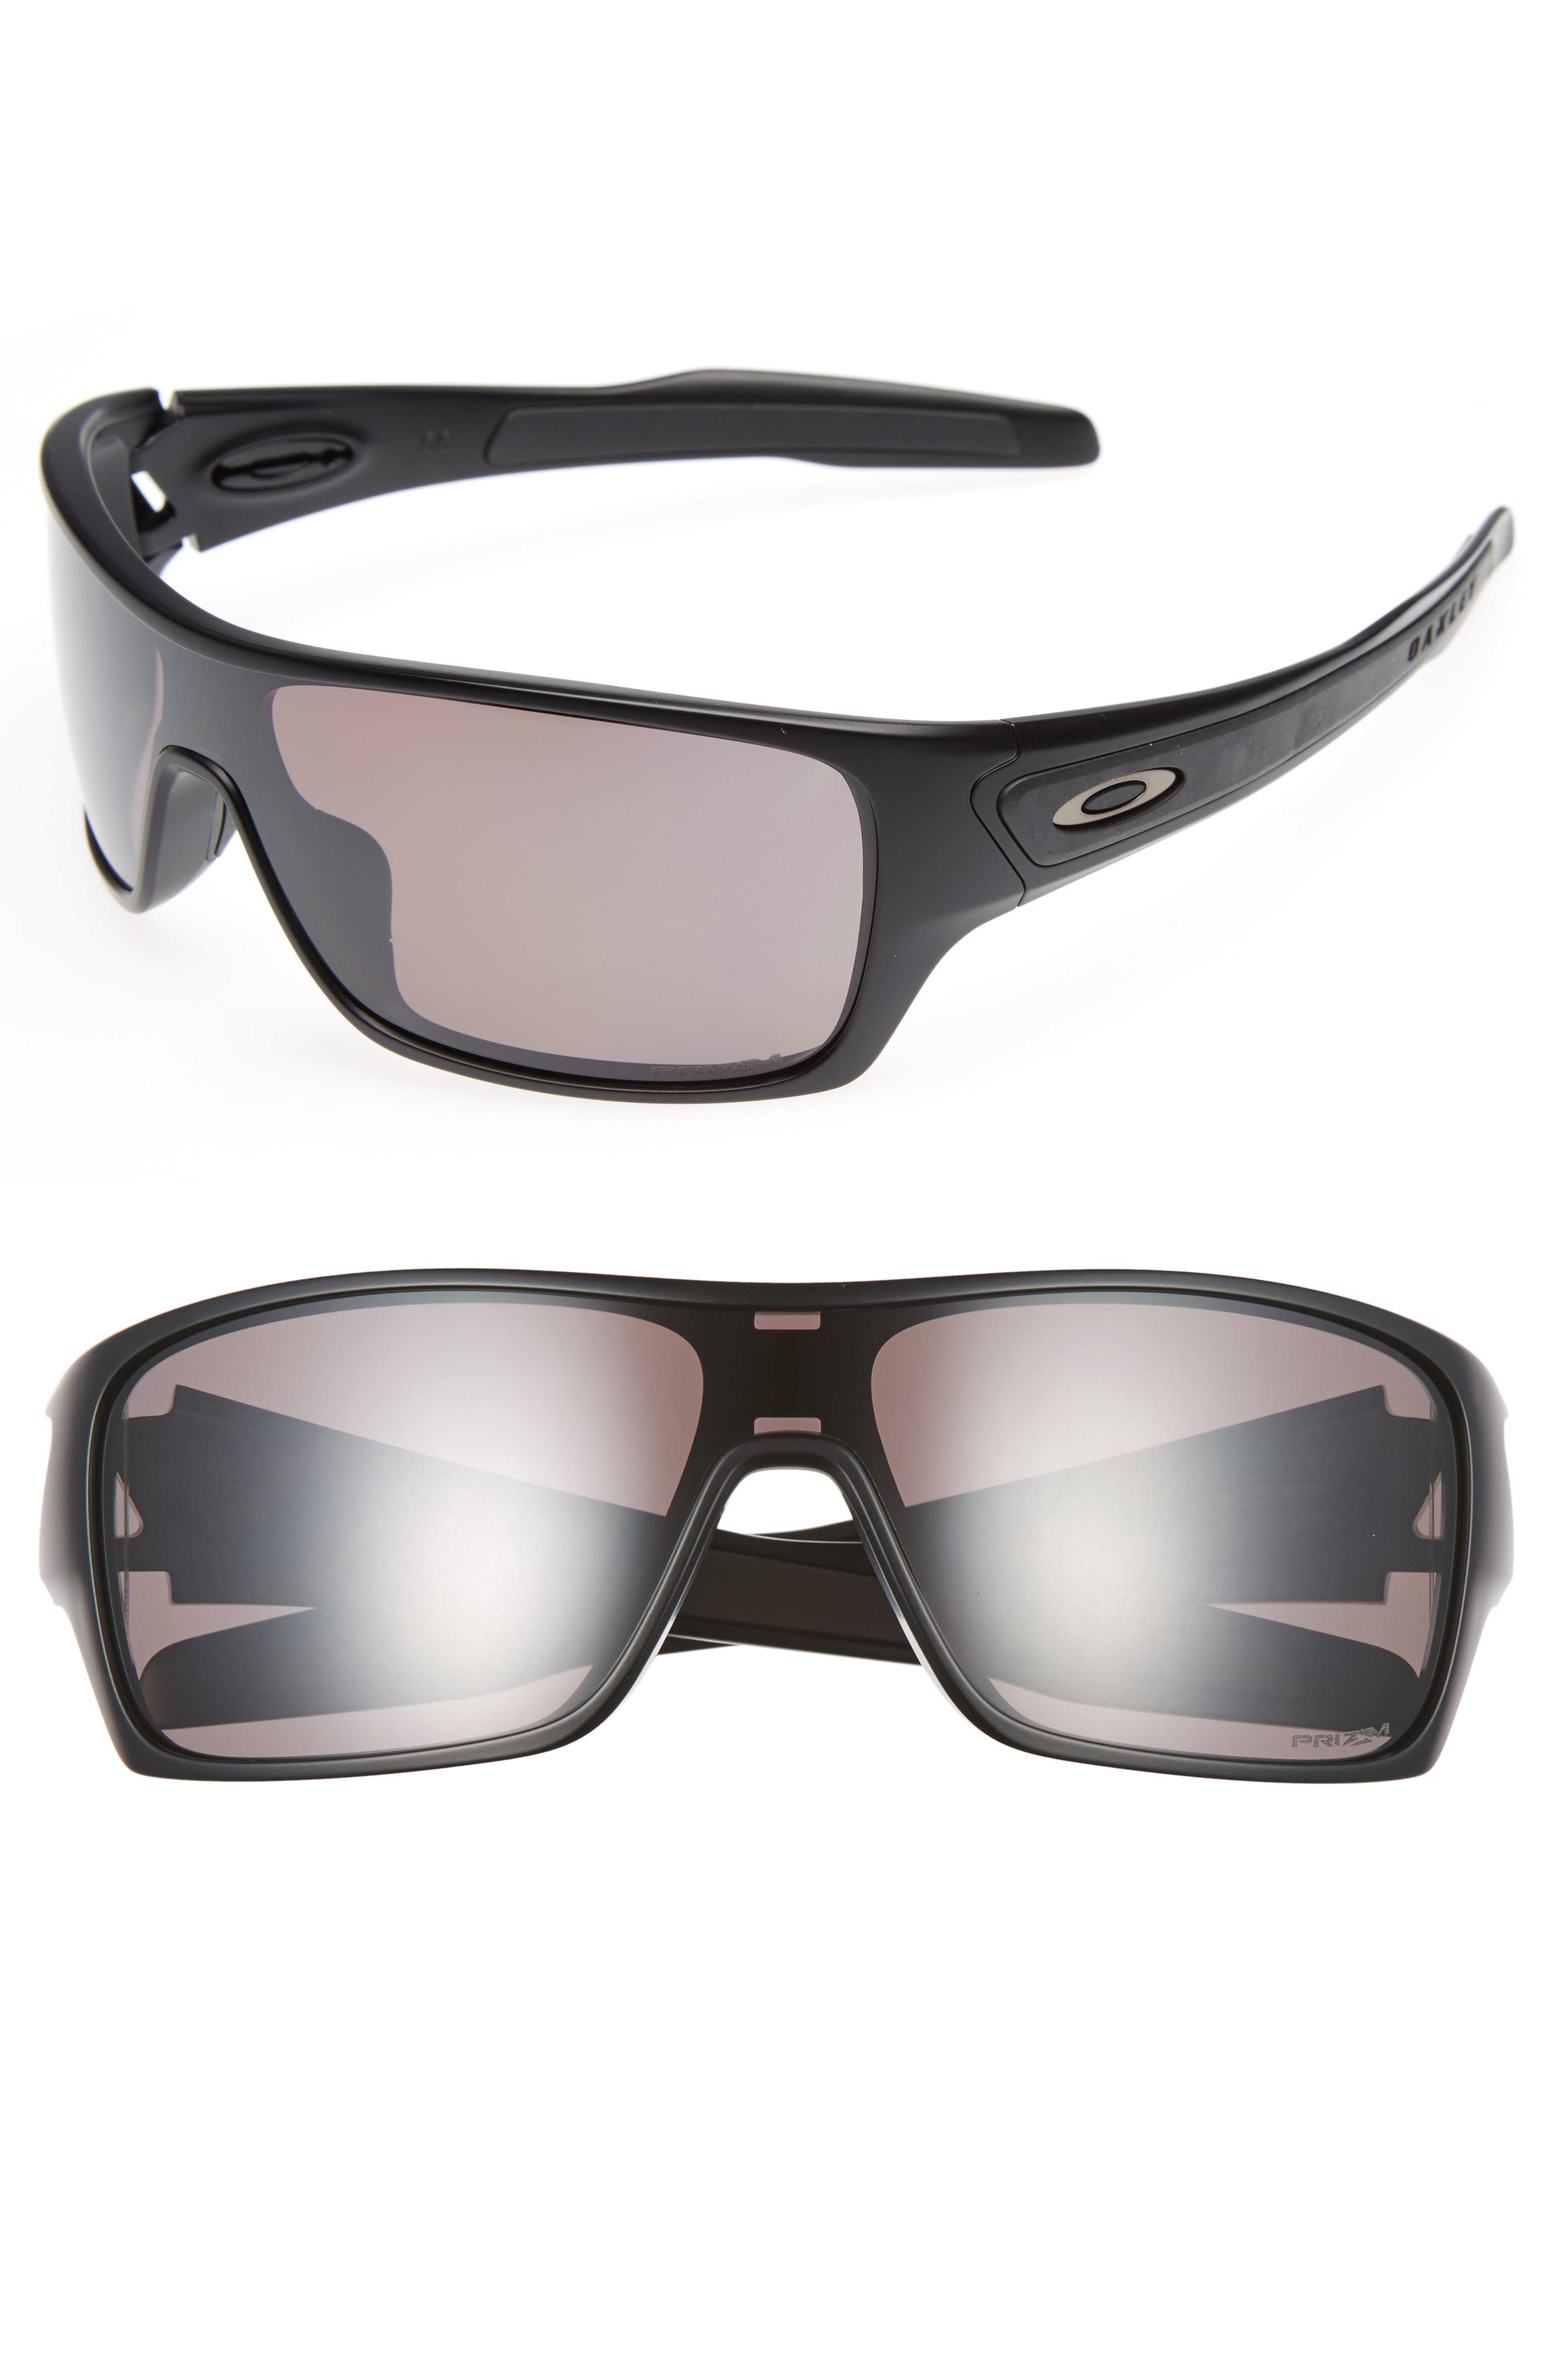 874f9e09479 Lyst - Oakley Turbine Rotor 68mm Polarized Sunglasses in Black for Men